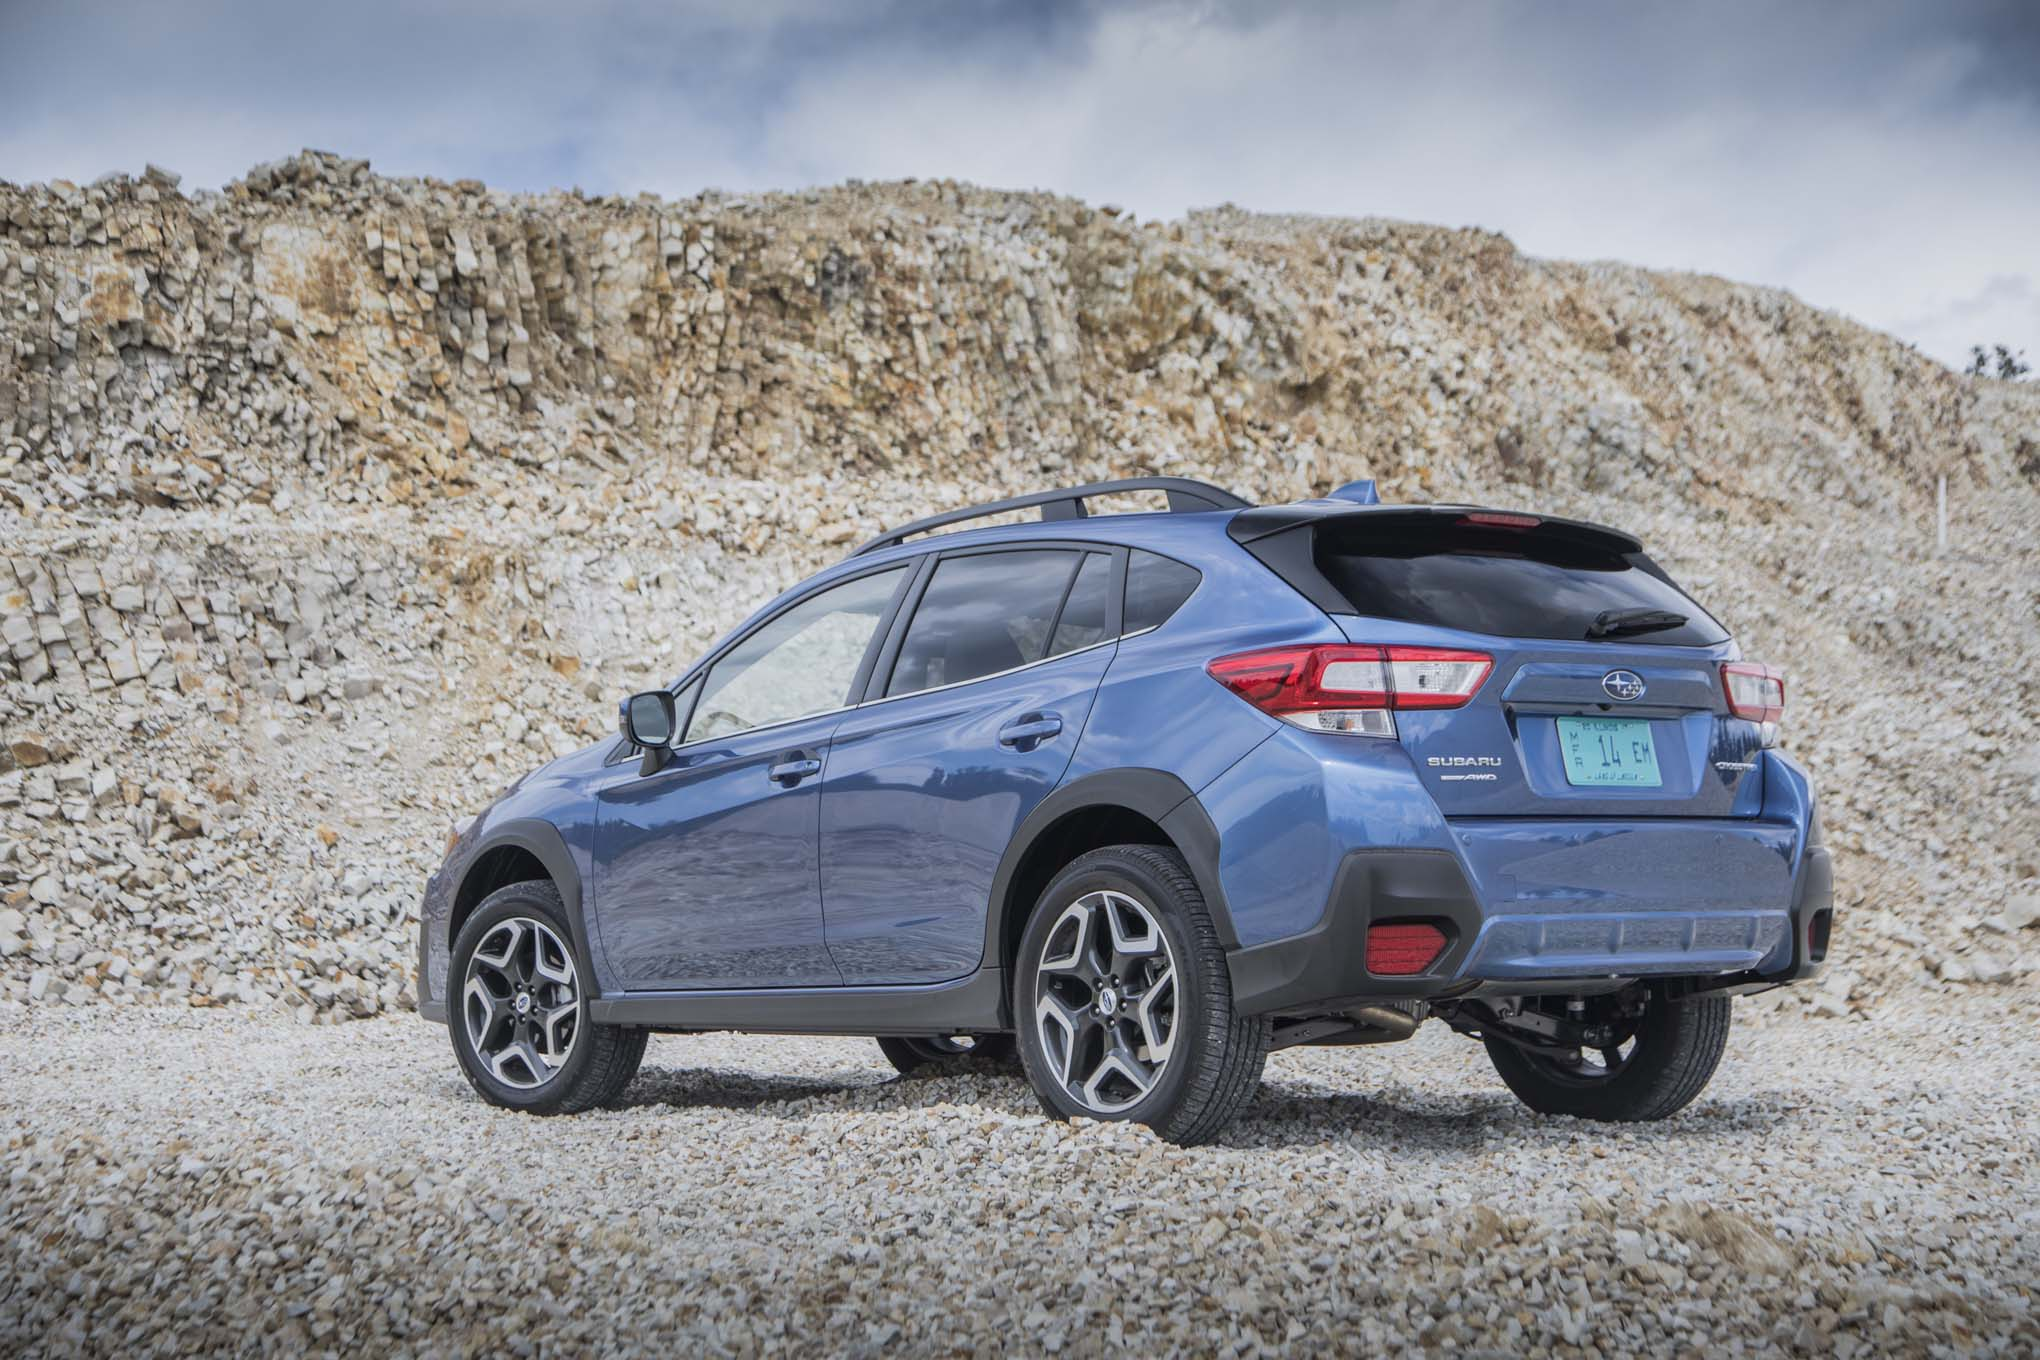 2018 subaru crosstrek first drive review automobile magazine for Subaru crosstrek 2017 interior